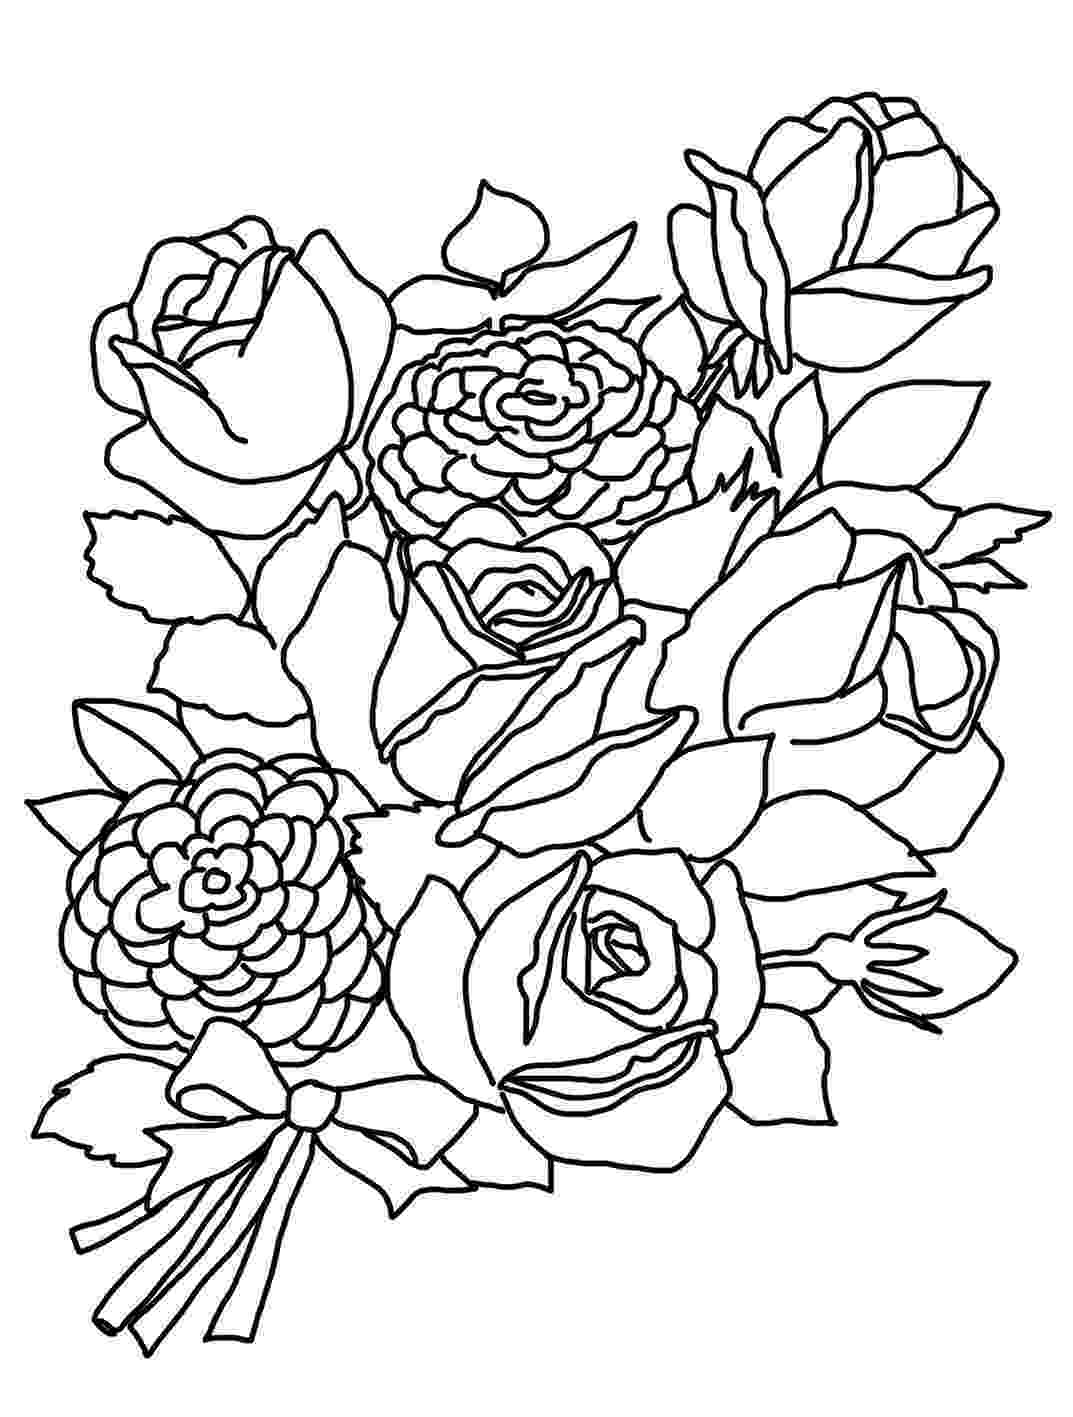 roses color pages printable rose coloring pages for kids cool2bkids roses pages color 1 1